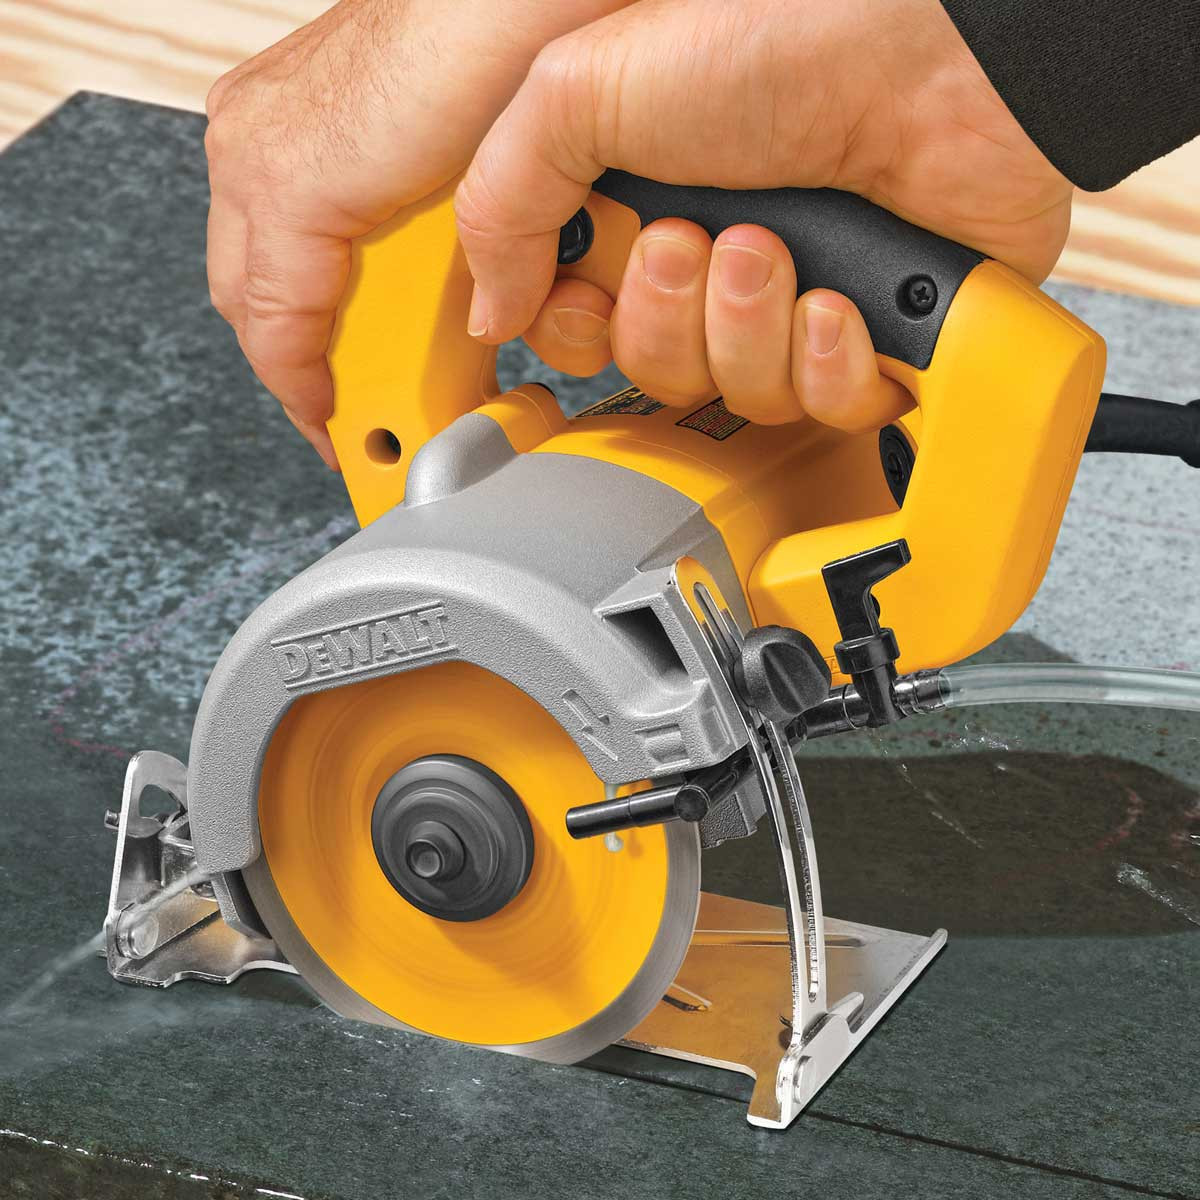 DWC860W Tile Saw Dry cutting porcelain